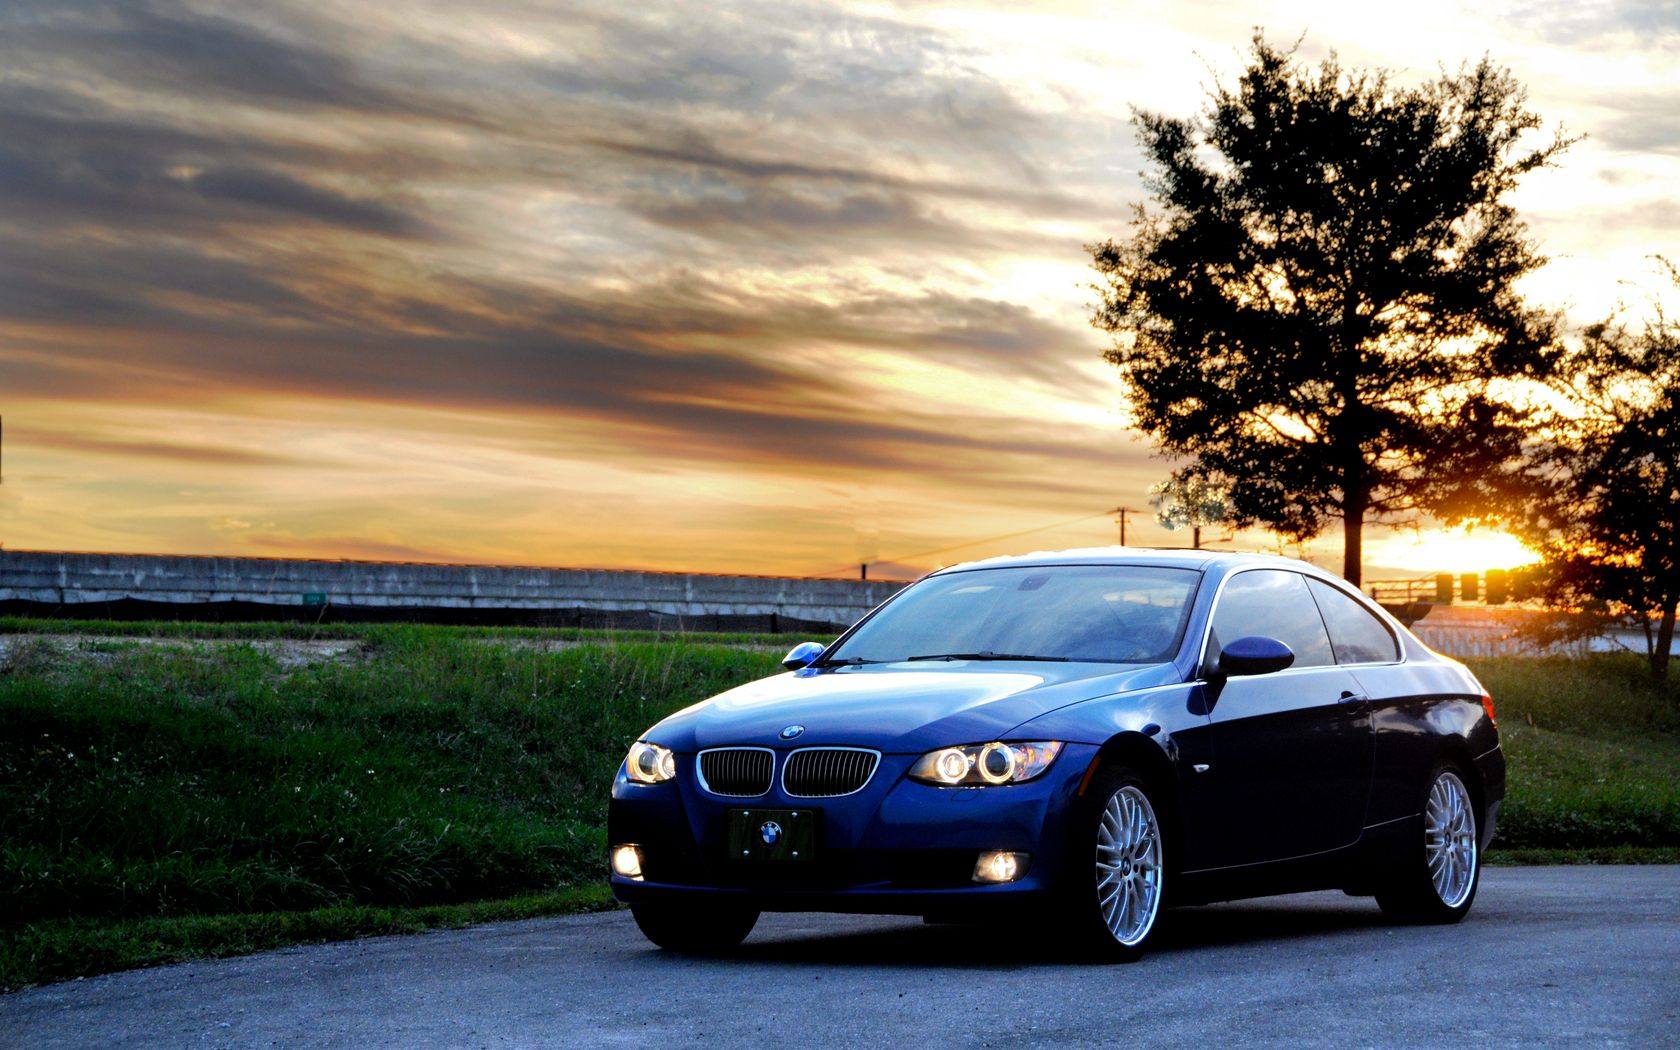 Self Drive Cars In Goa Is Accordingly Your Best Alternative To